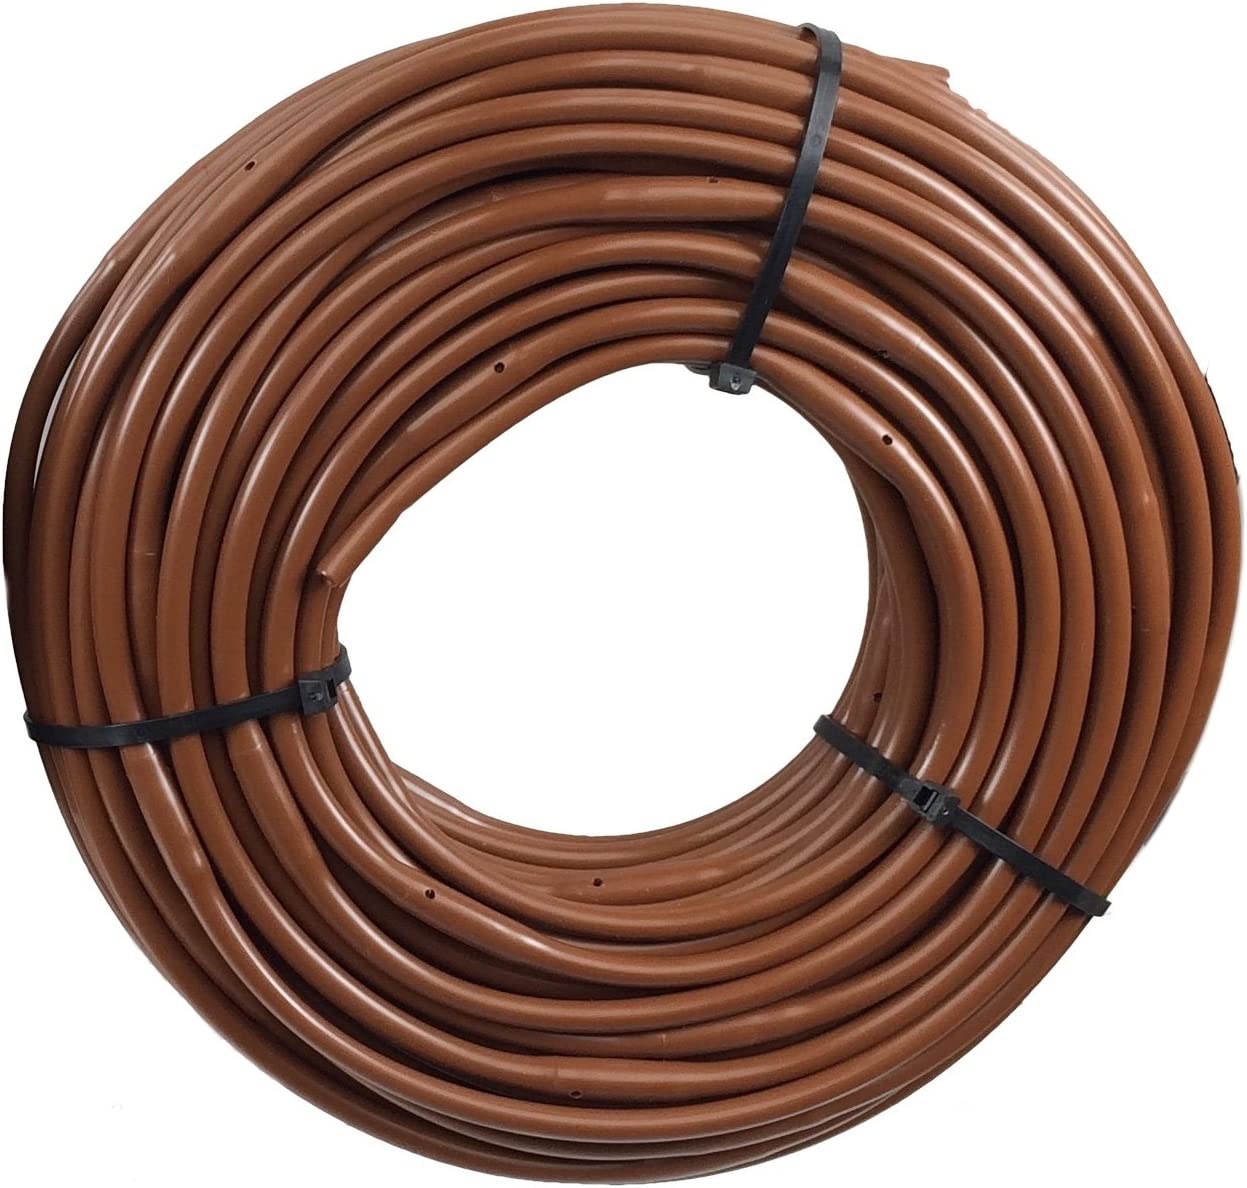 1//4 Poly Dripline 12 Spacing 0.5 GPH 50 Black Drip Tubing